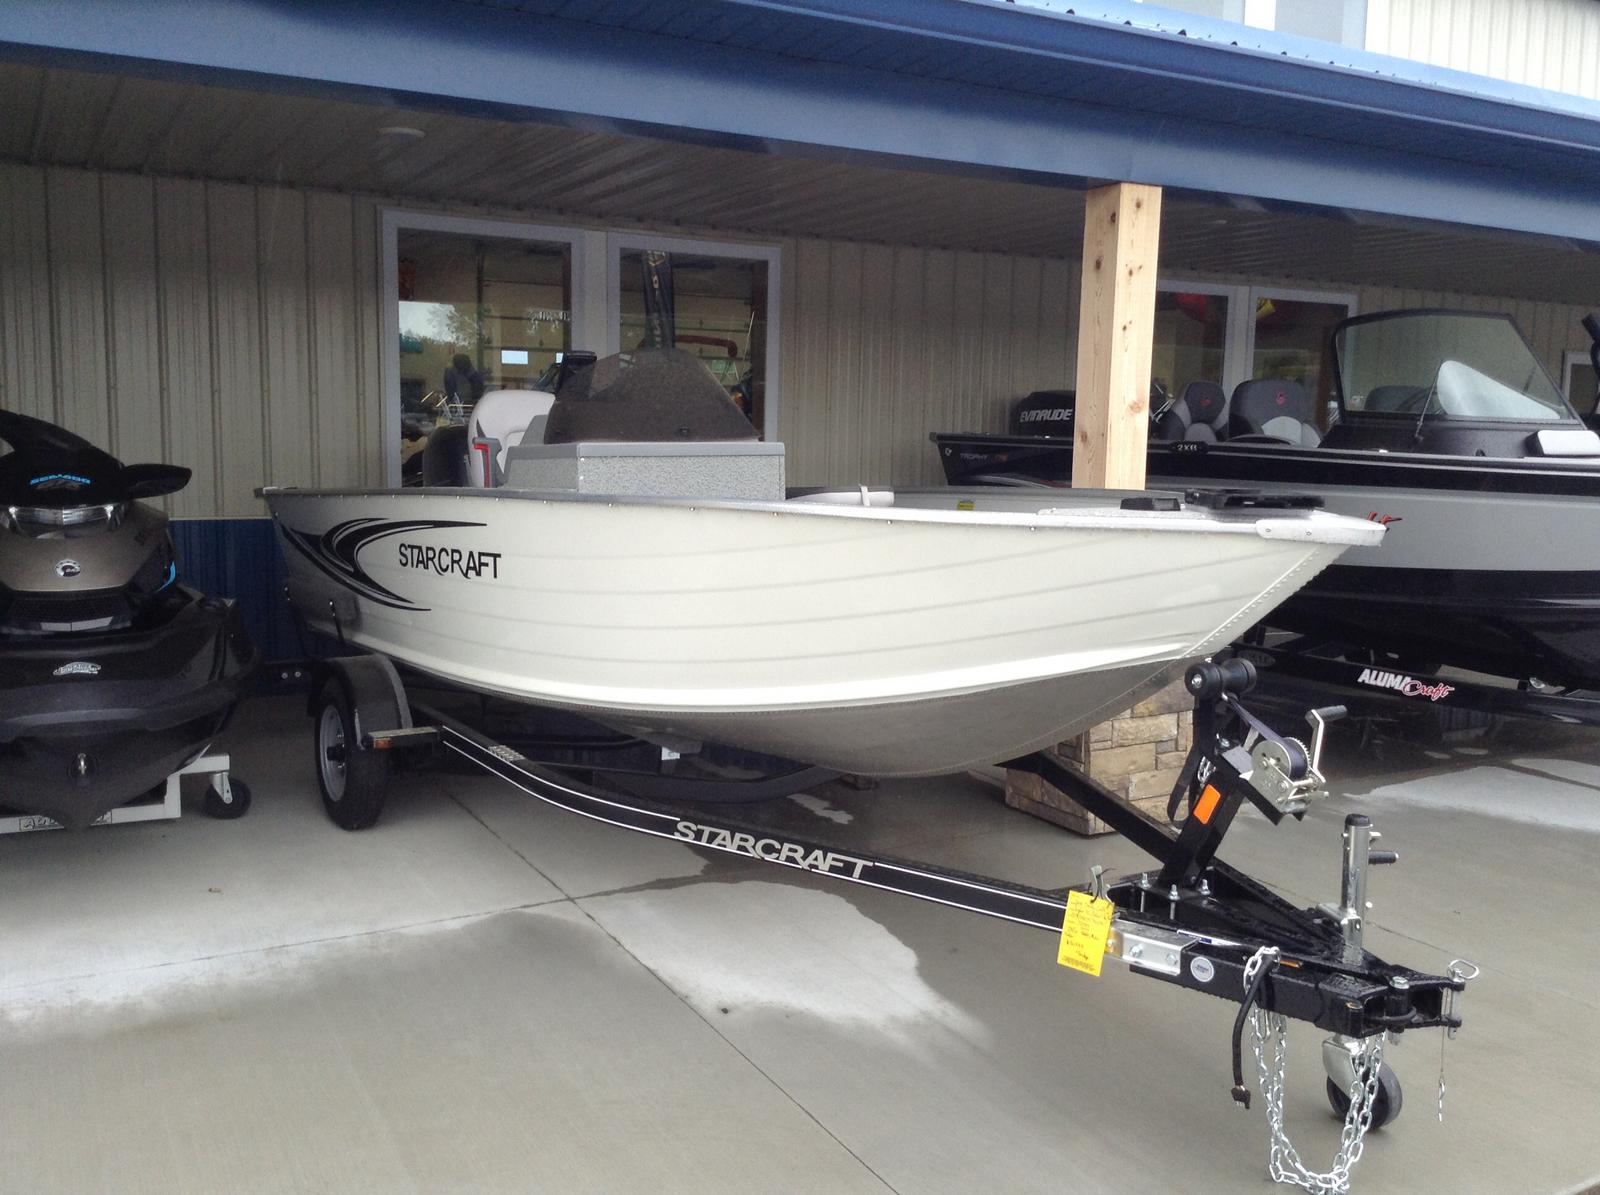 Starcraft ANGLER XL/ PATRIOT DLX 16 SC